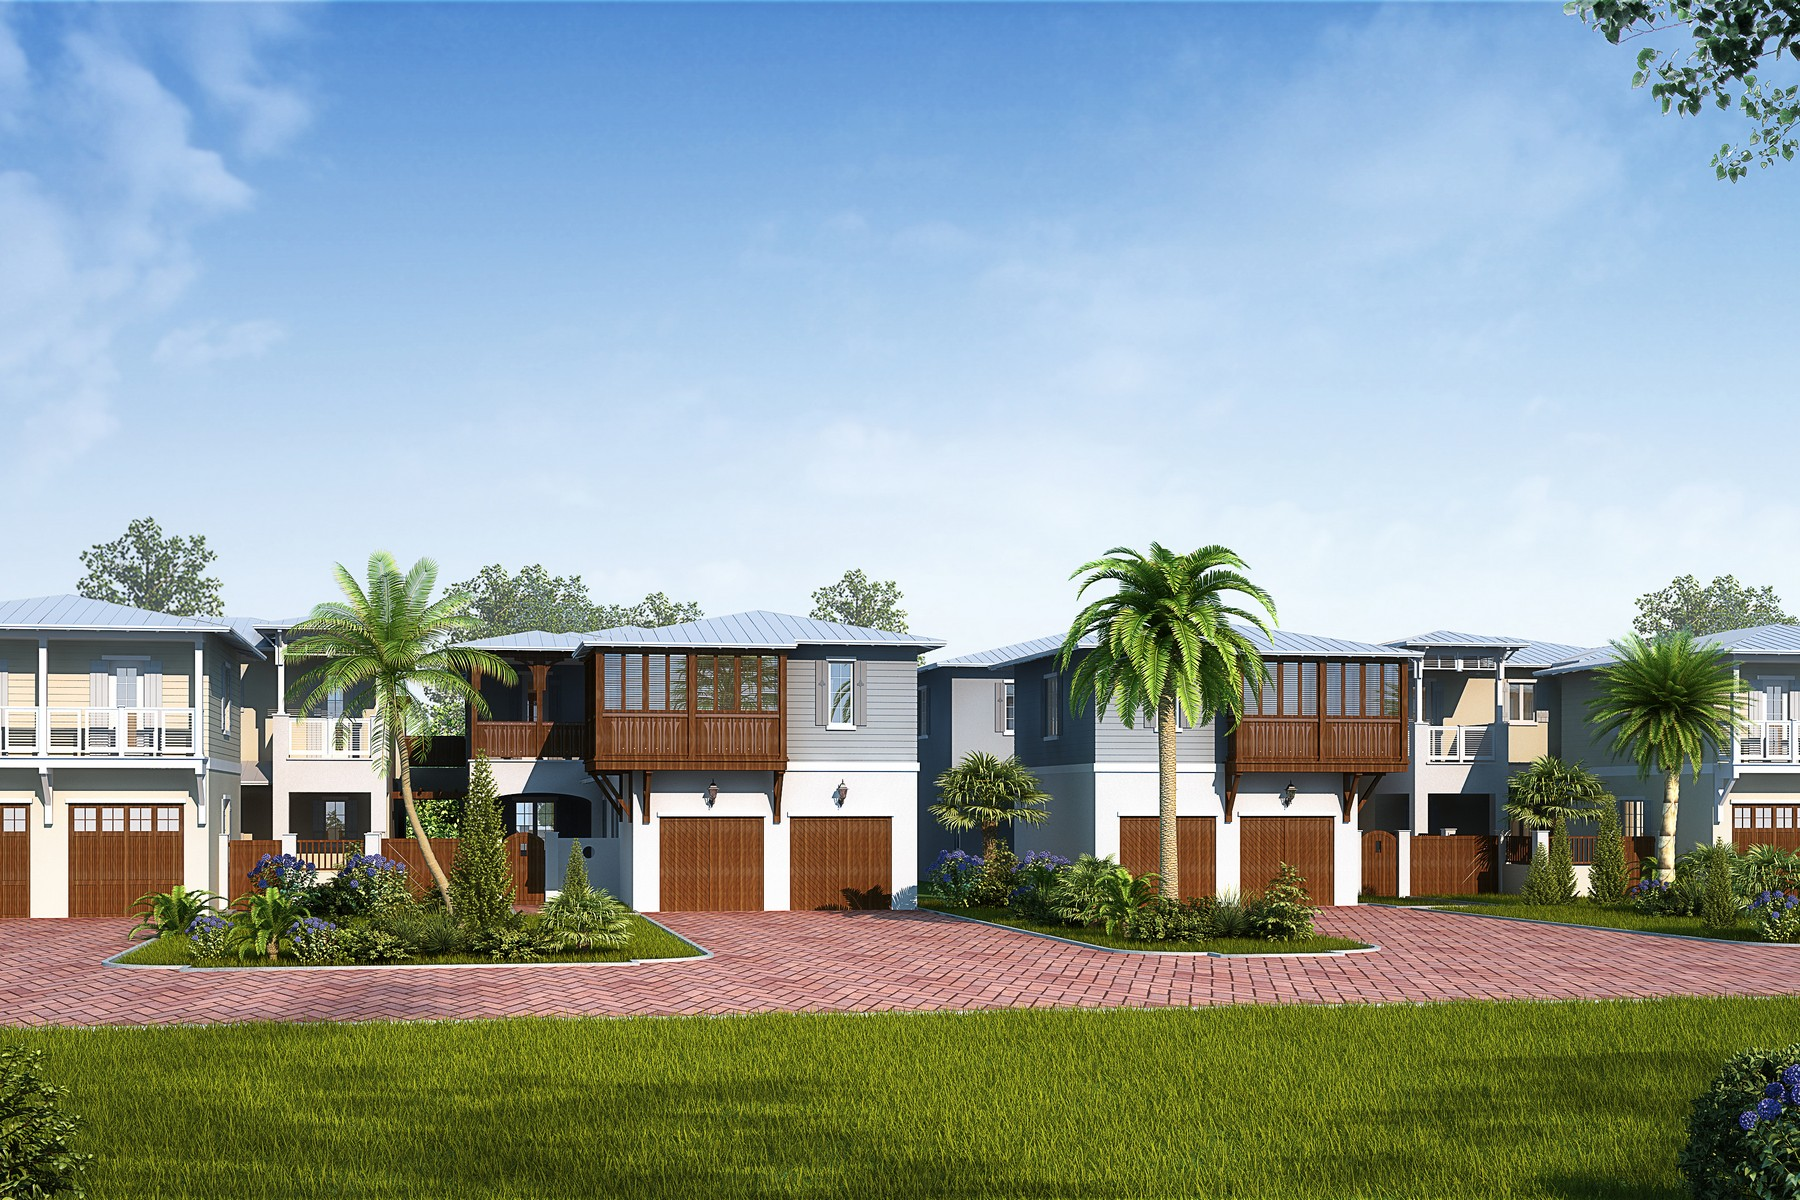 Single Family Home for Sale at Avenues of Melbourne Beach 410 Ocean Avenue Melbourne Beach, Florida 32951 United States